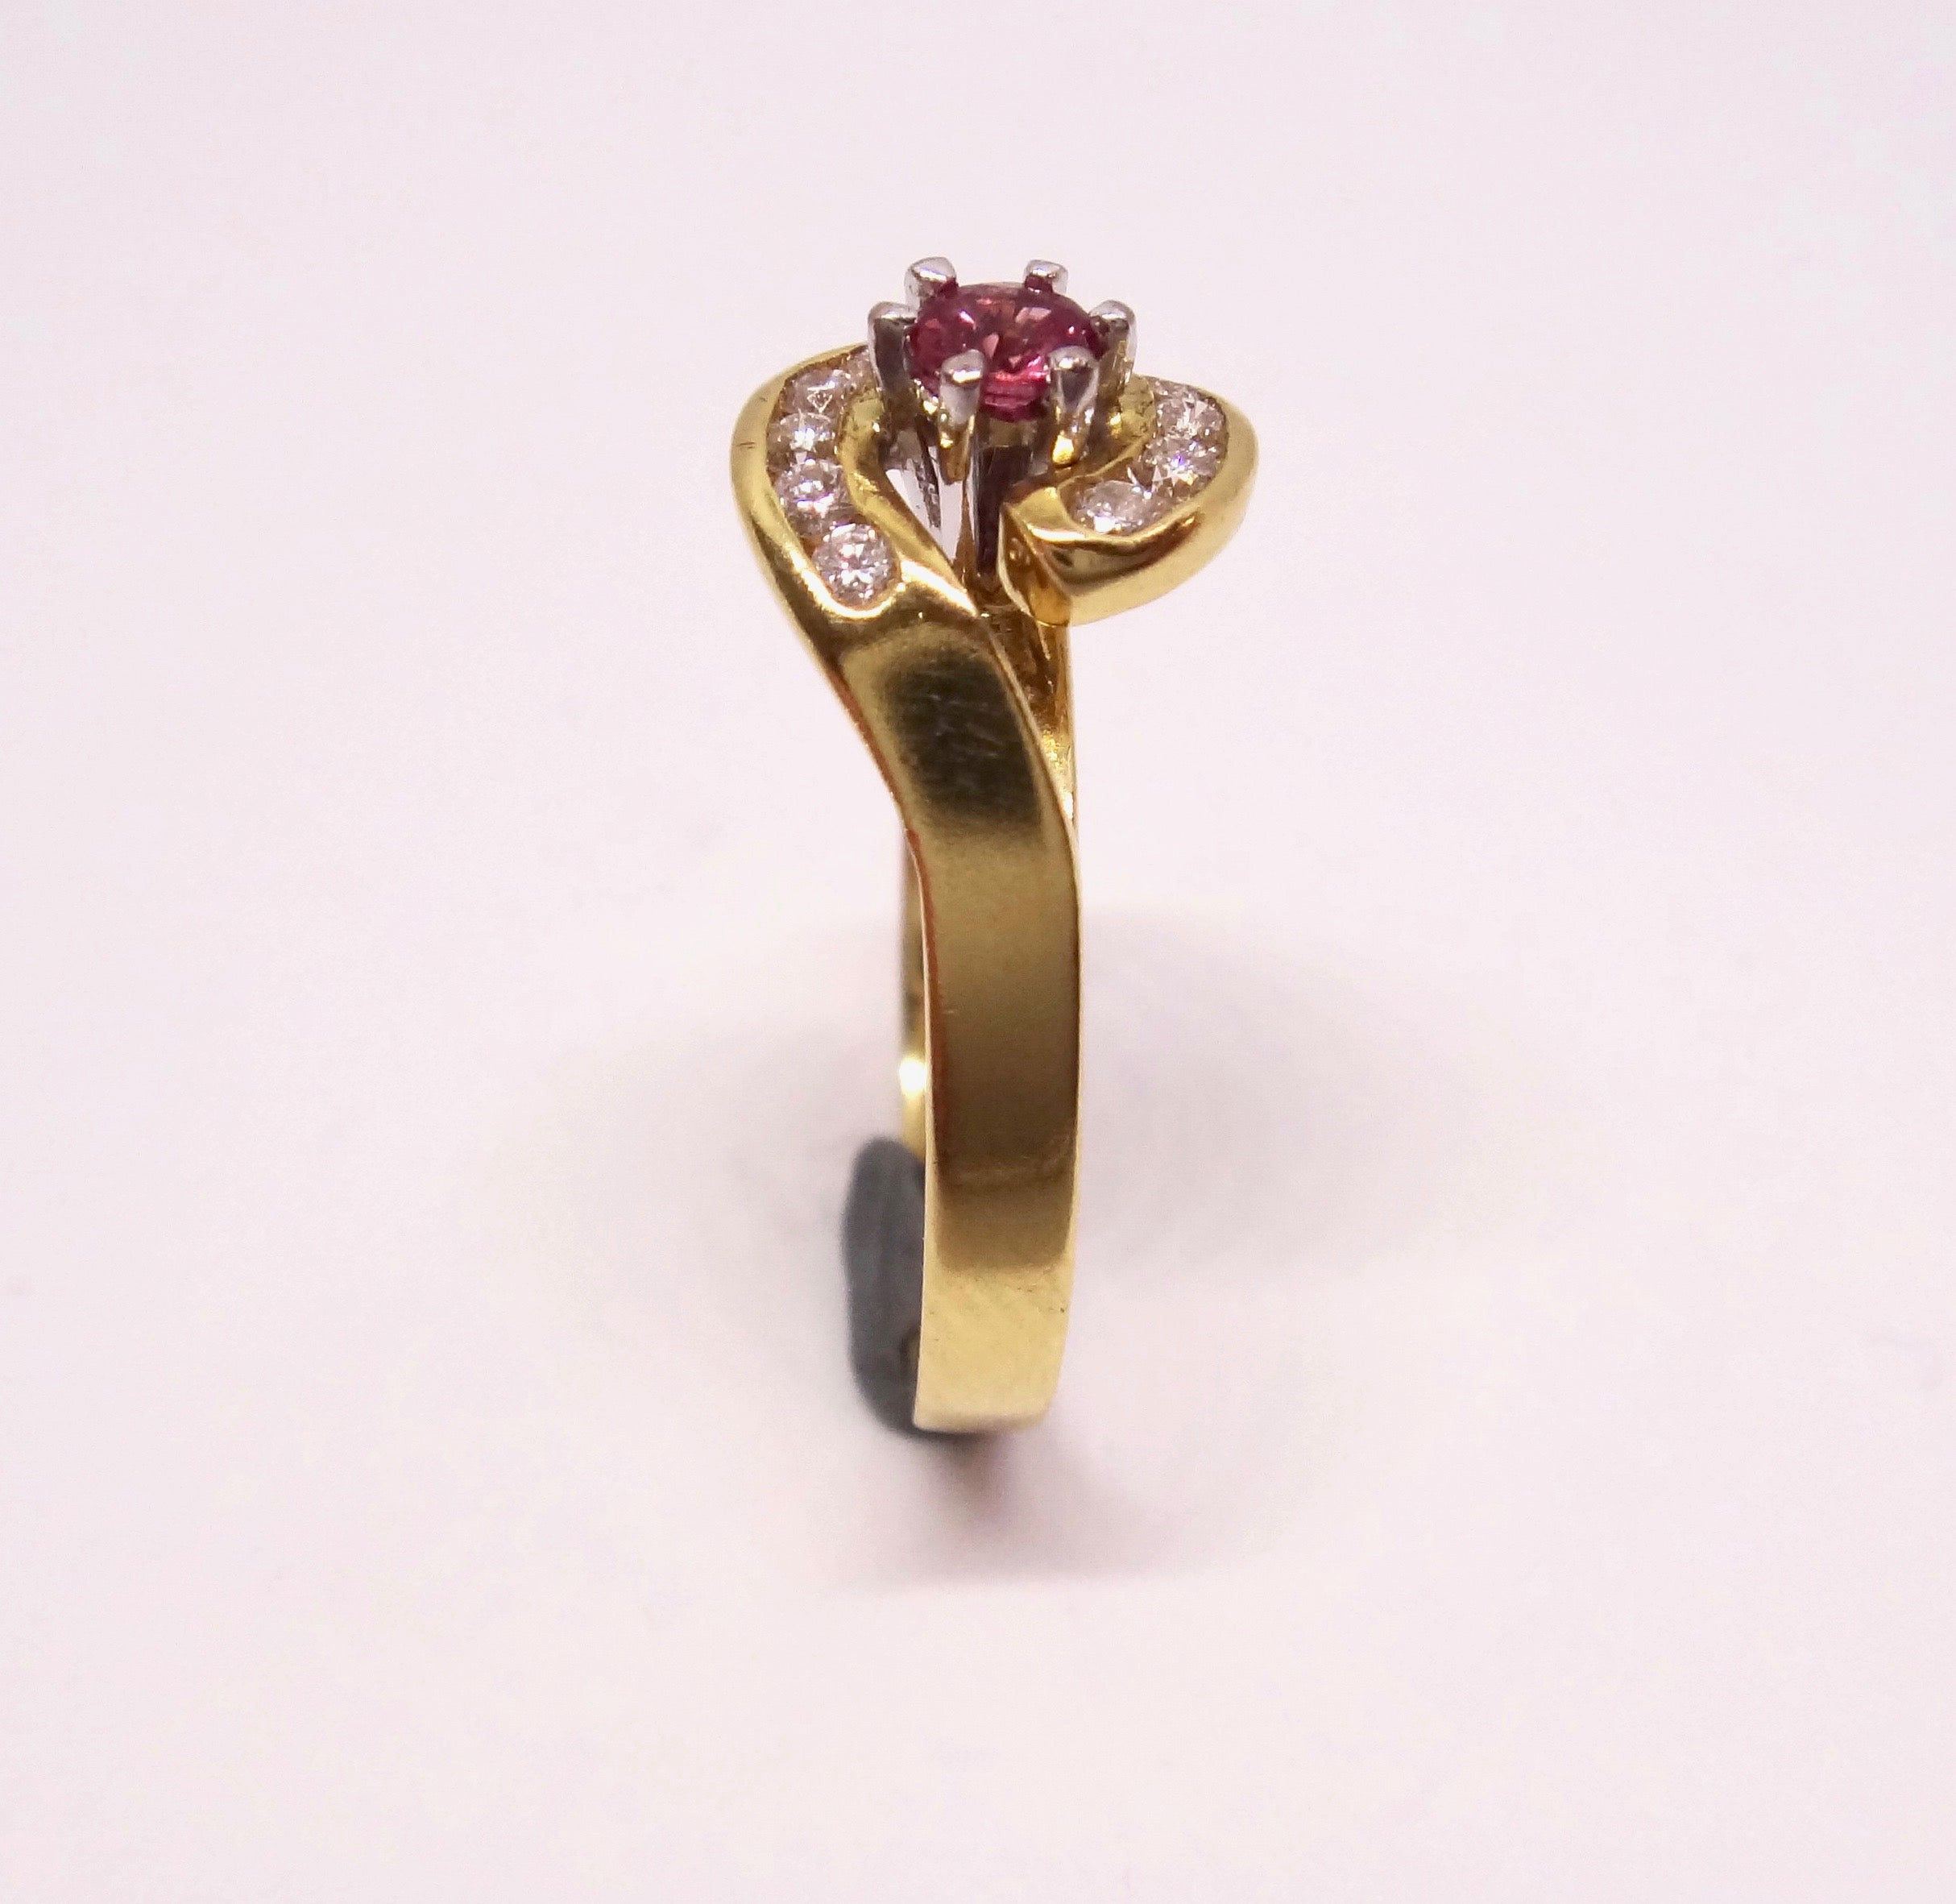 18CT Yellow GOLD, Diamond & Pink Sapphire Ring